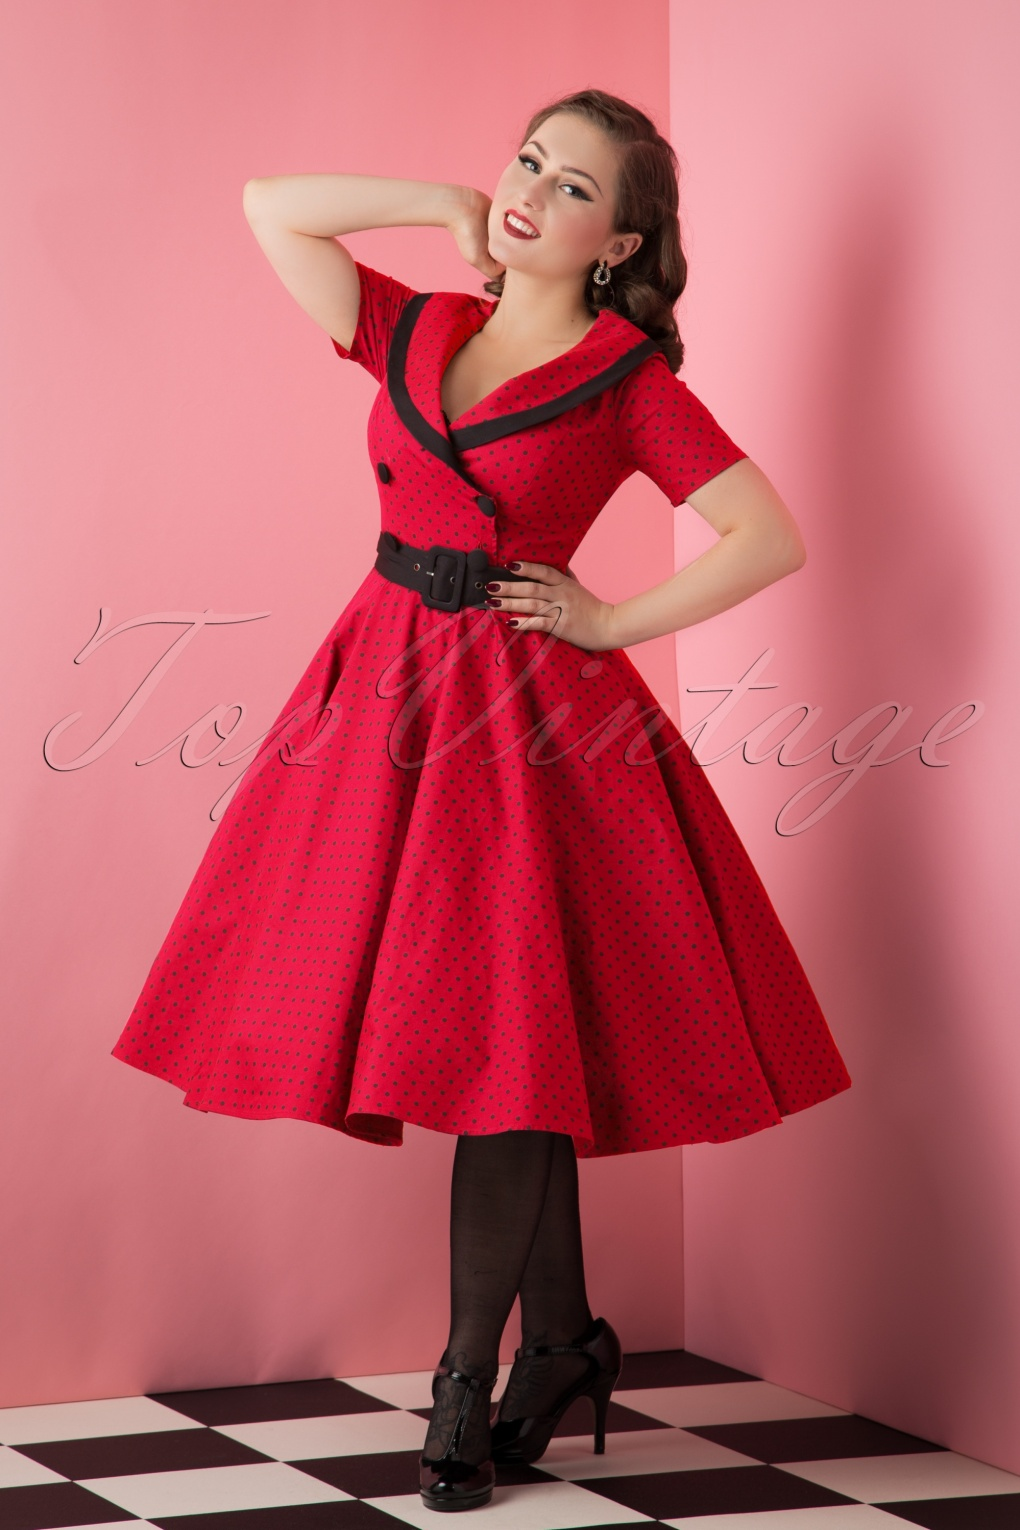 Vintage Polka Dot Dresses – Ditsy 50s Prints 50s Mimi Polkadot Swing Dress in Red £59.80 AT vintagedancer.com